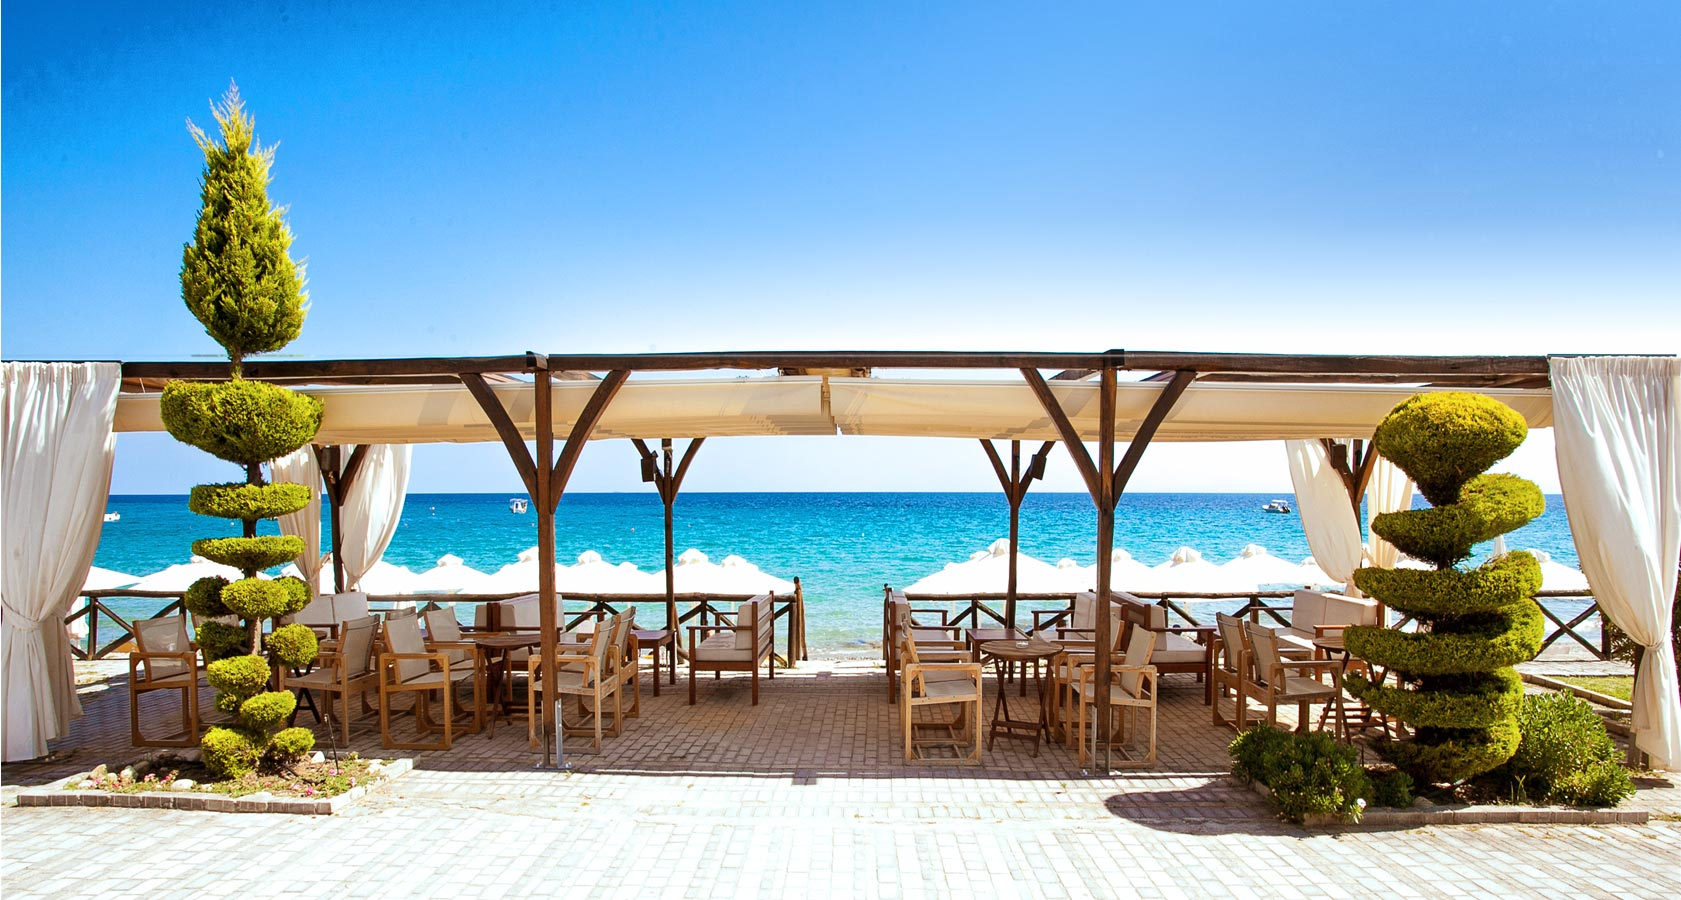 Hotel Paralio in Possidi Halkidiki Greece